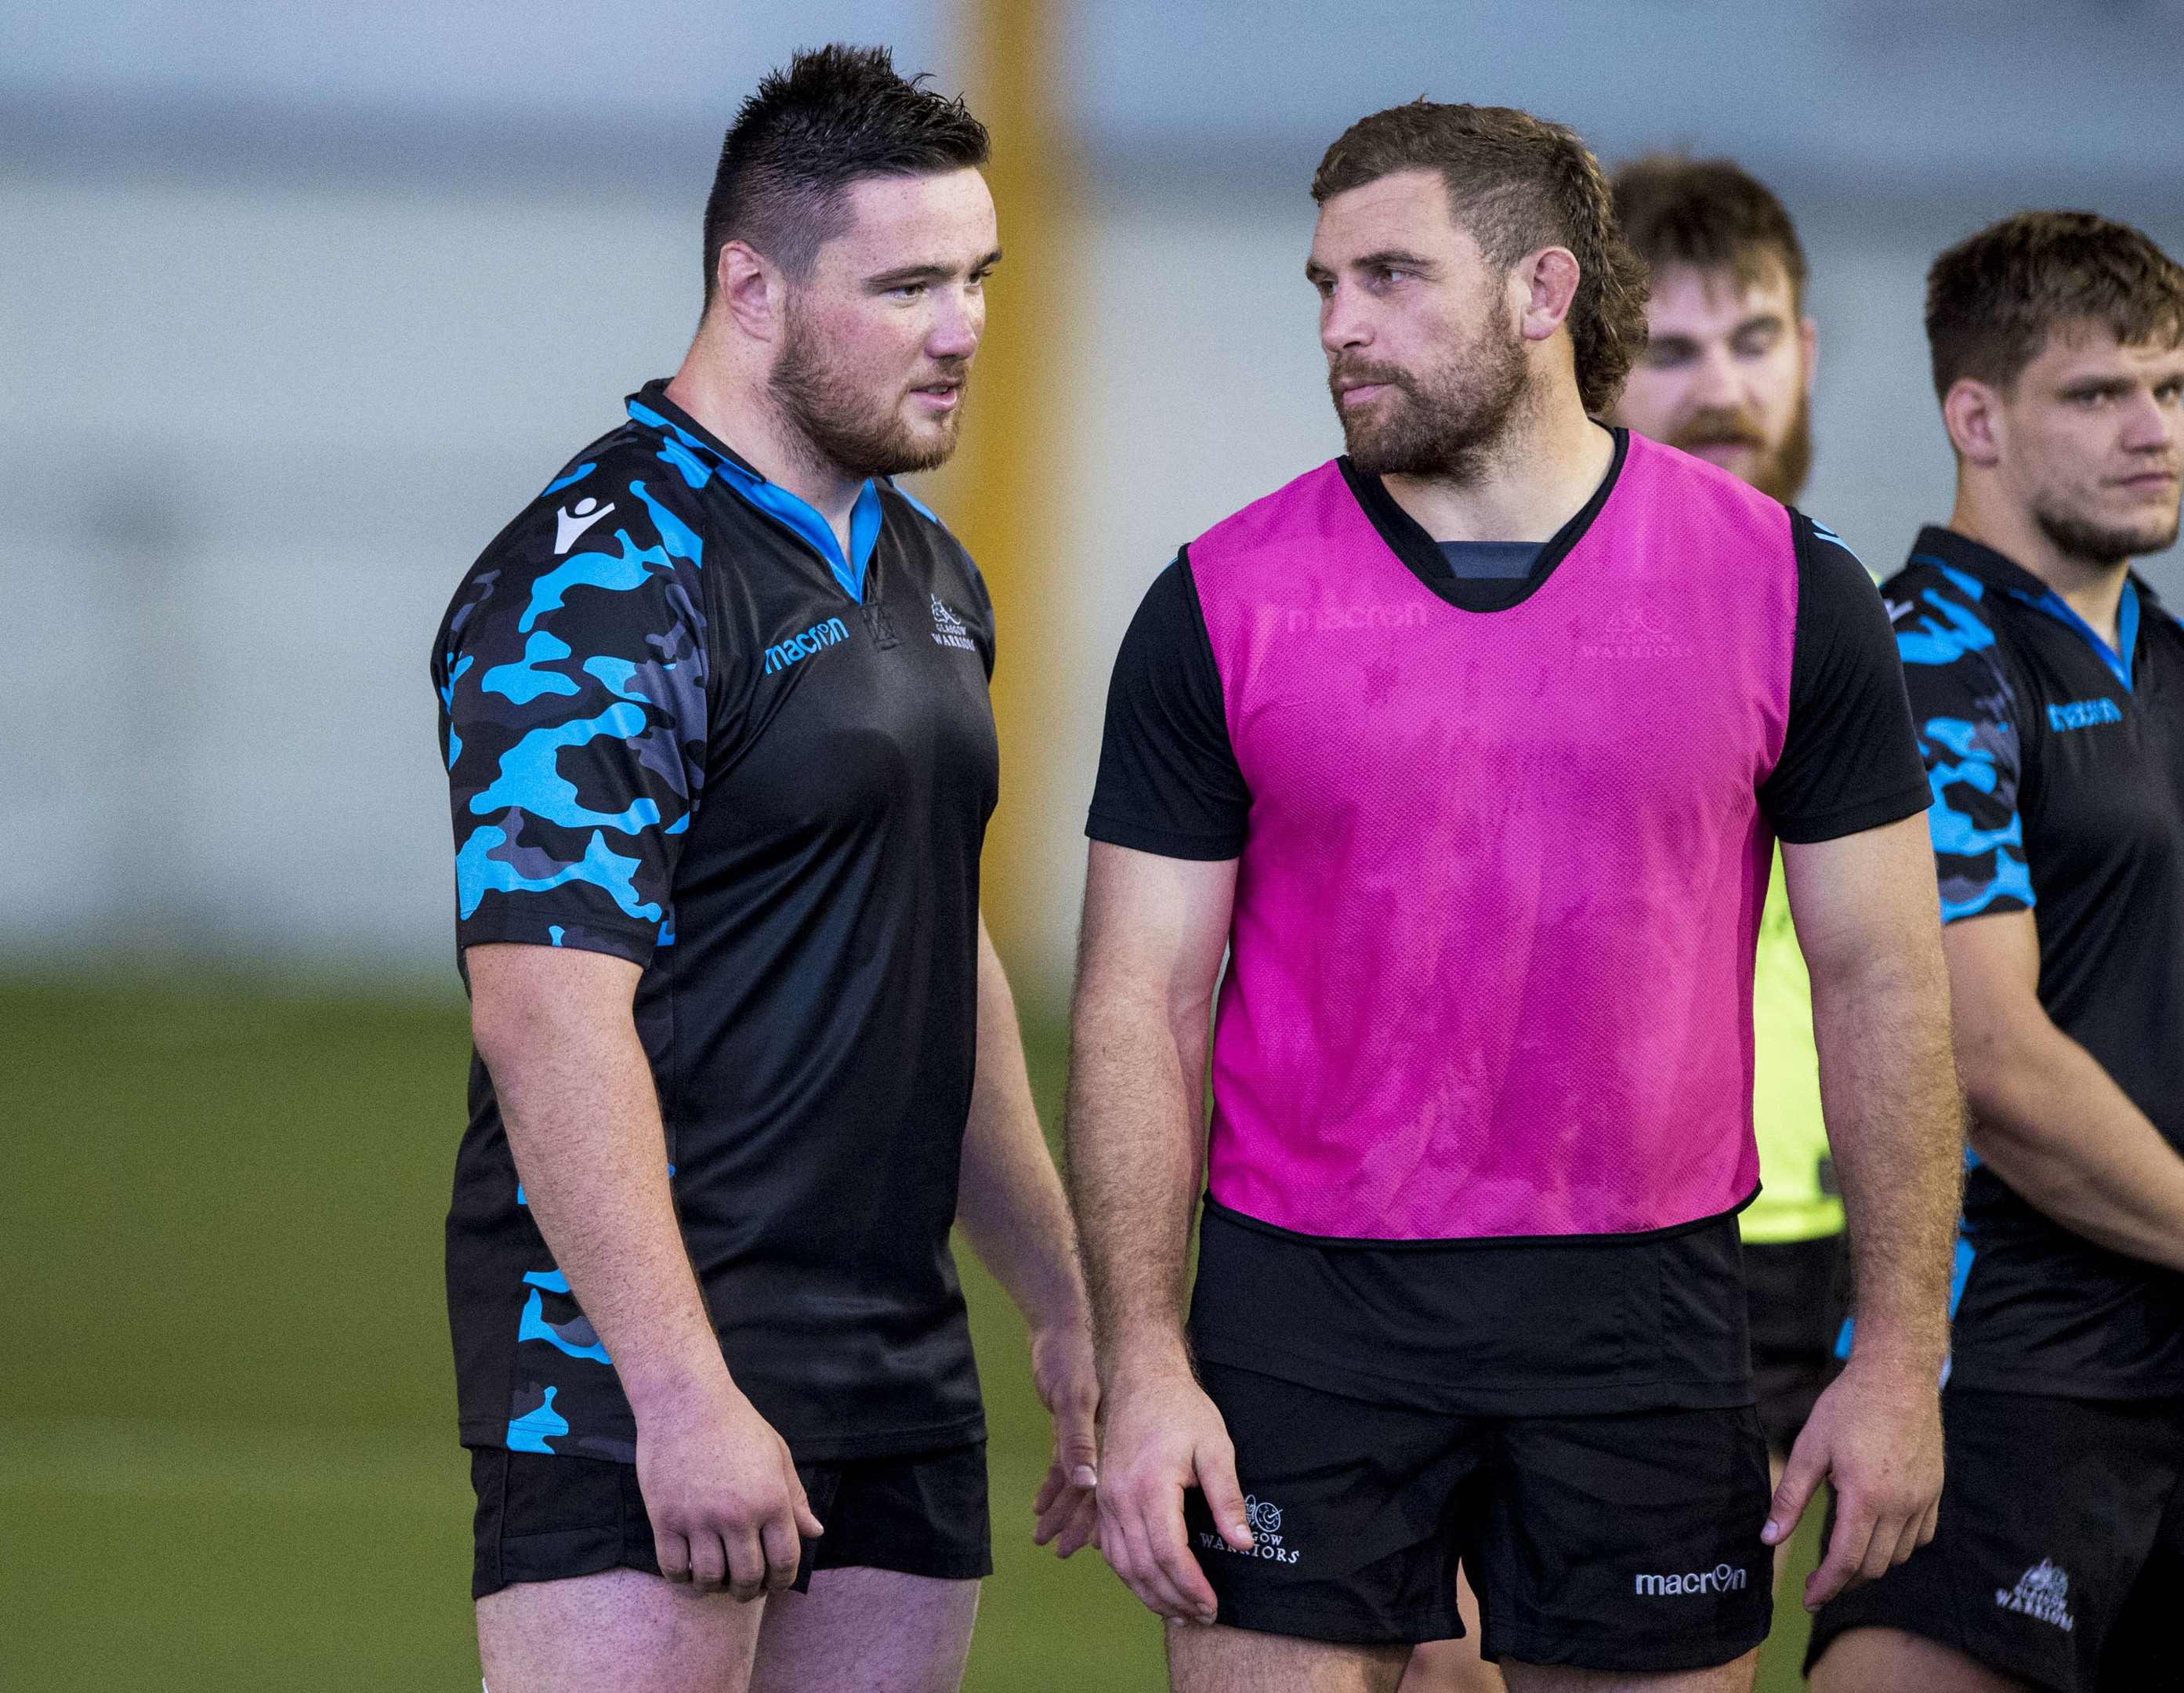 Glasgow Warriors' Zander Fagerson (L) and Callum Gibbins have both been outstanding this season.